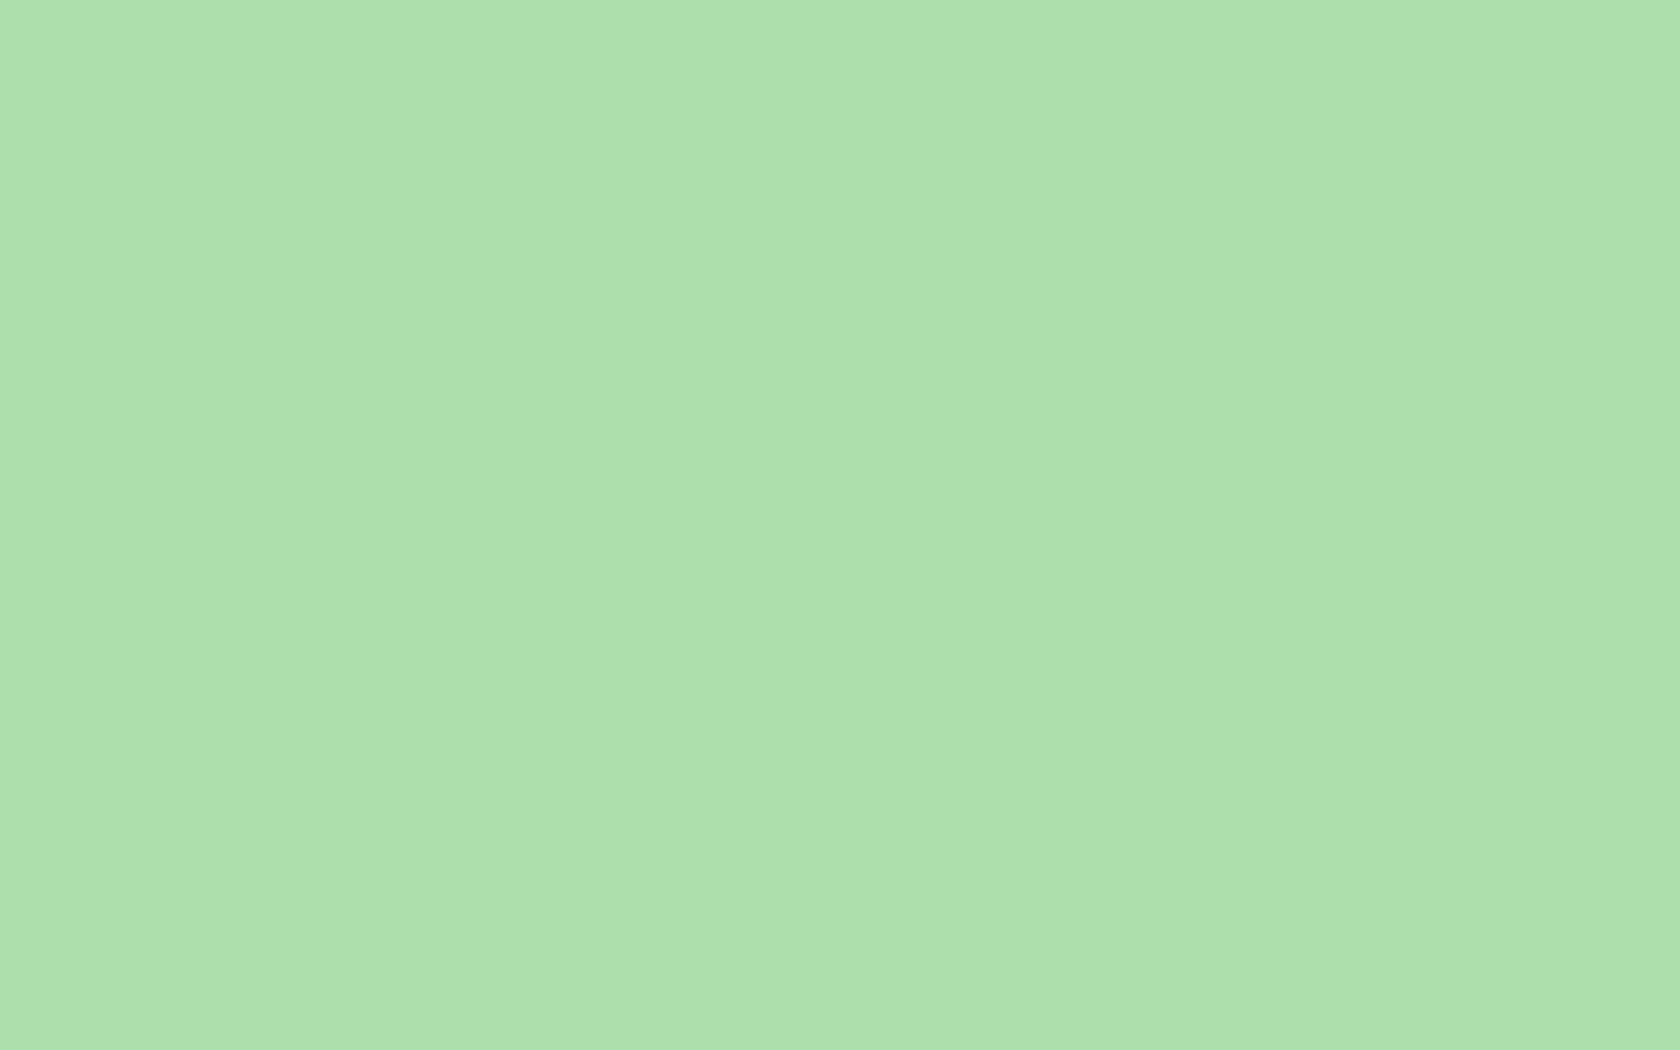 1680x1050 Light Moss Green Solid Color Background